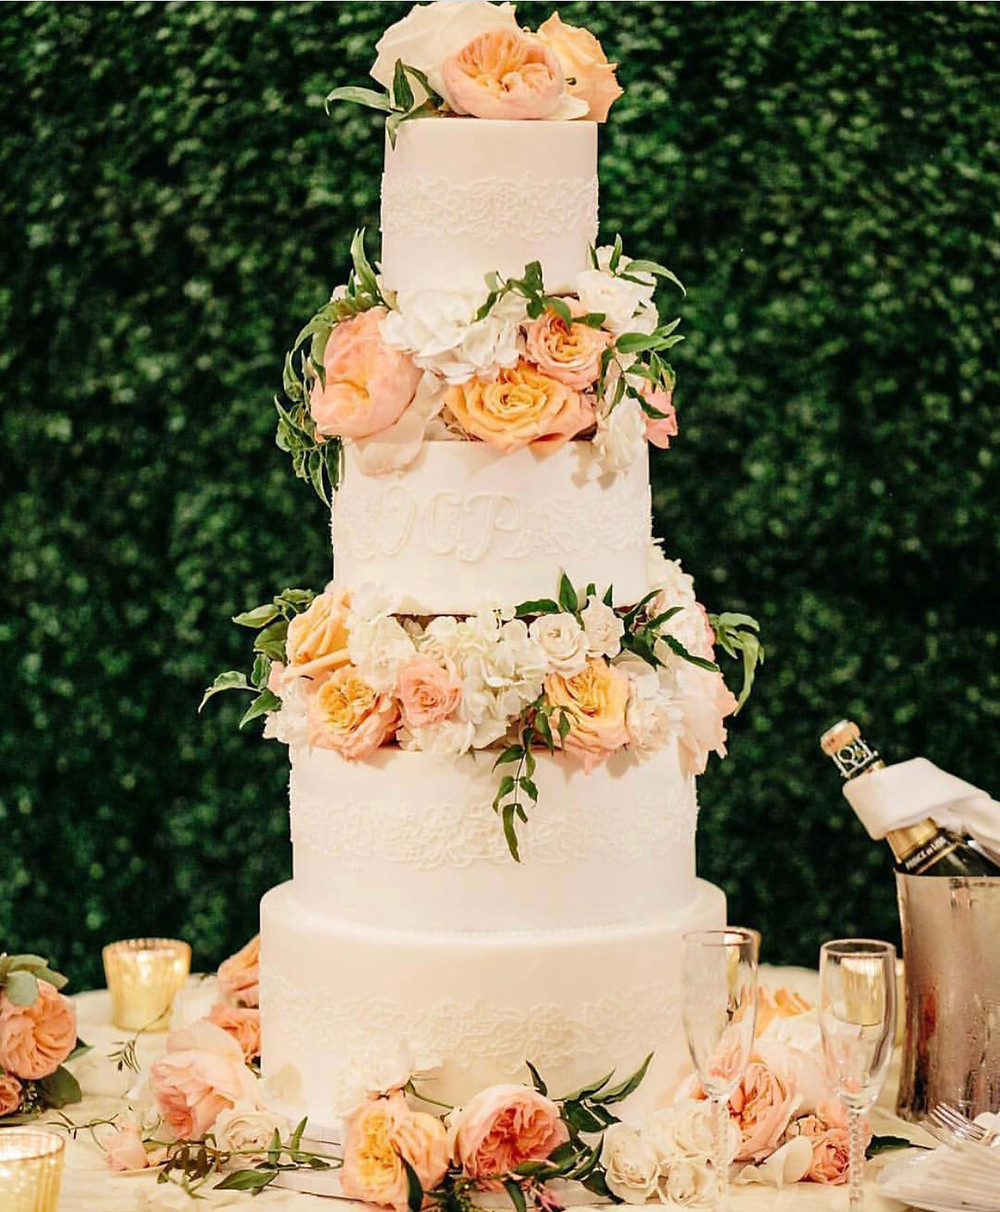 Magnificent wedding cake from Sweet Treets Bakery